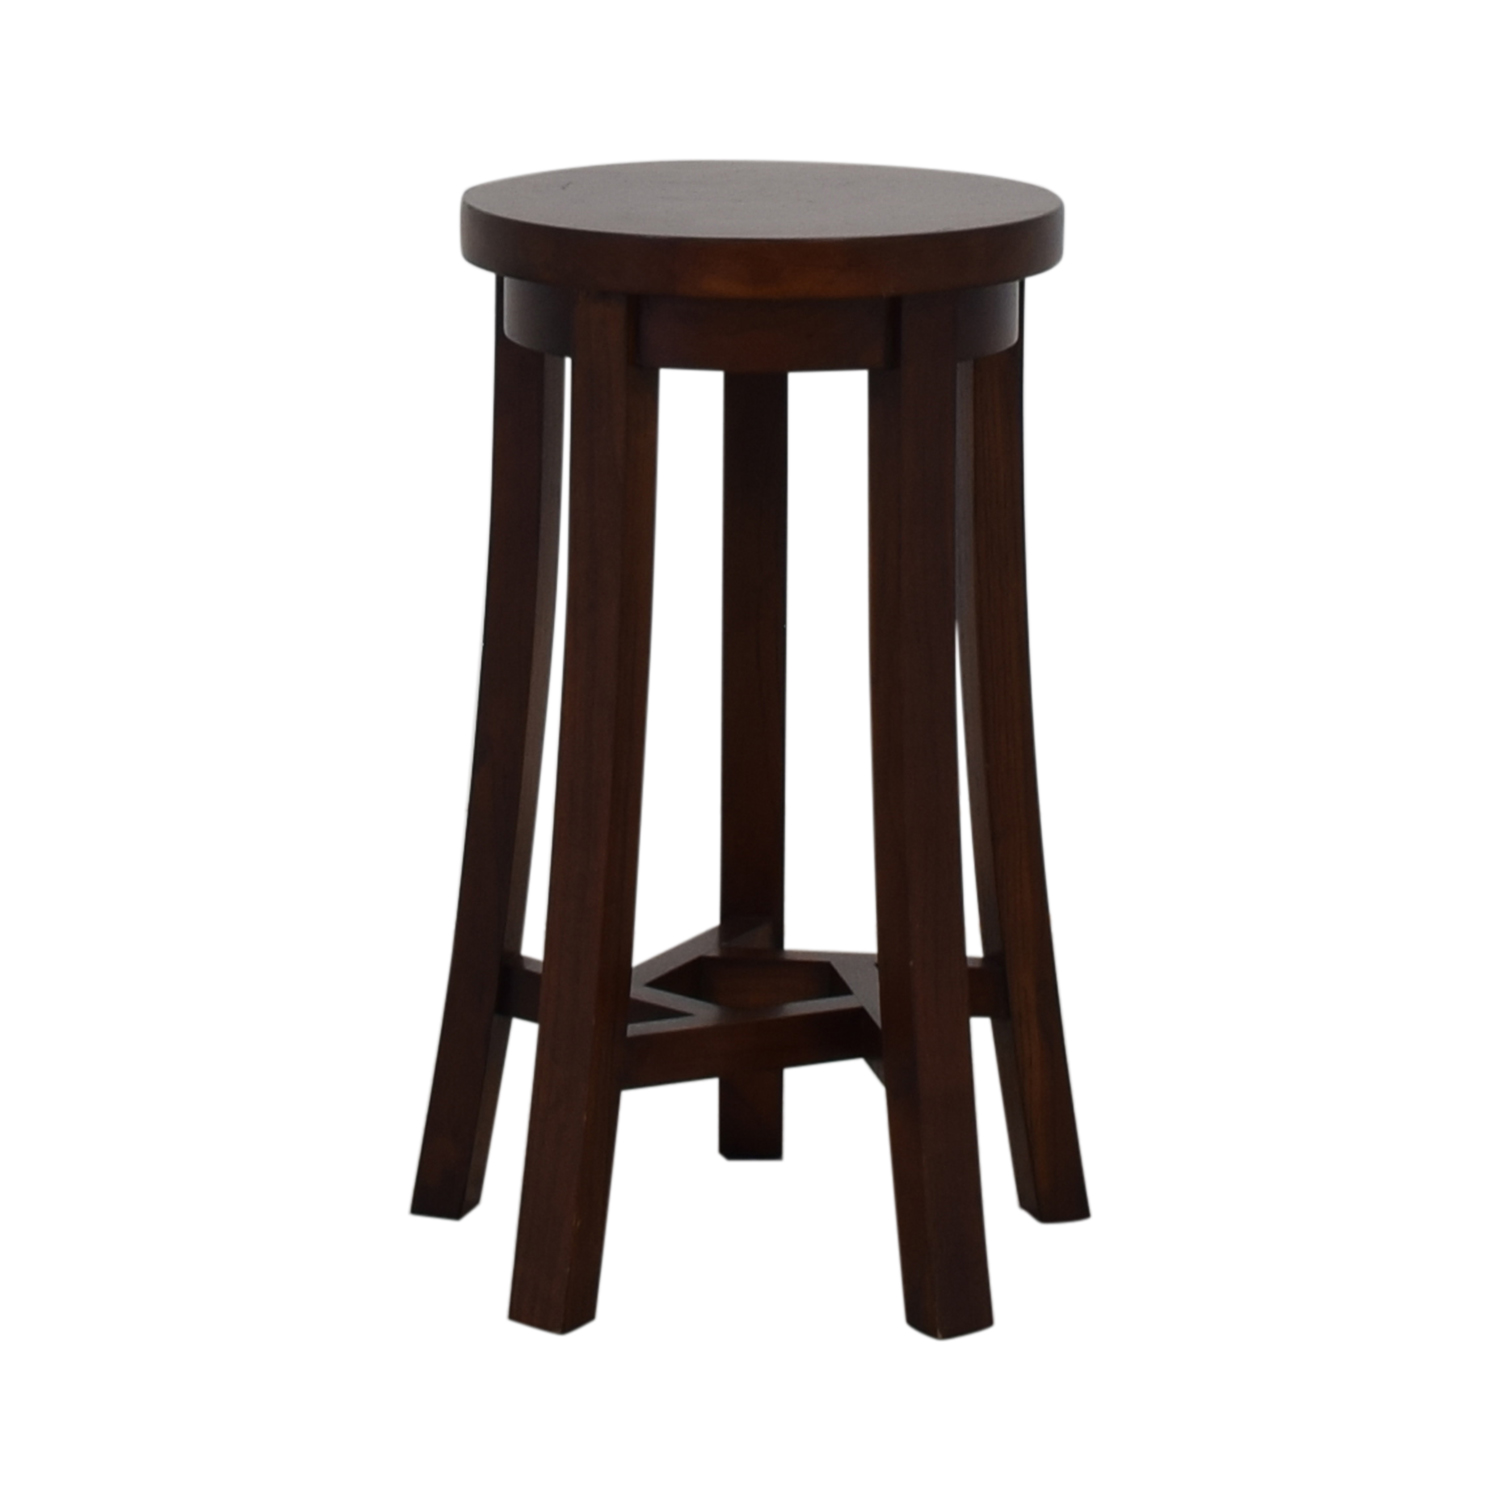 shop Room & Board Room & Board by Maria Yee Mingshi Round End Table online